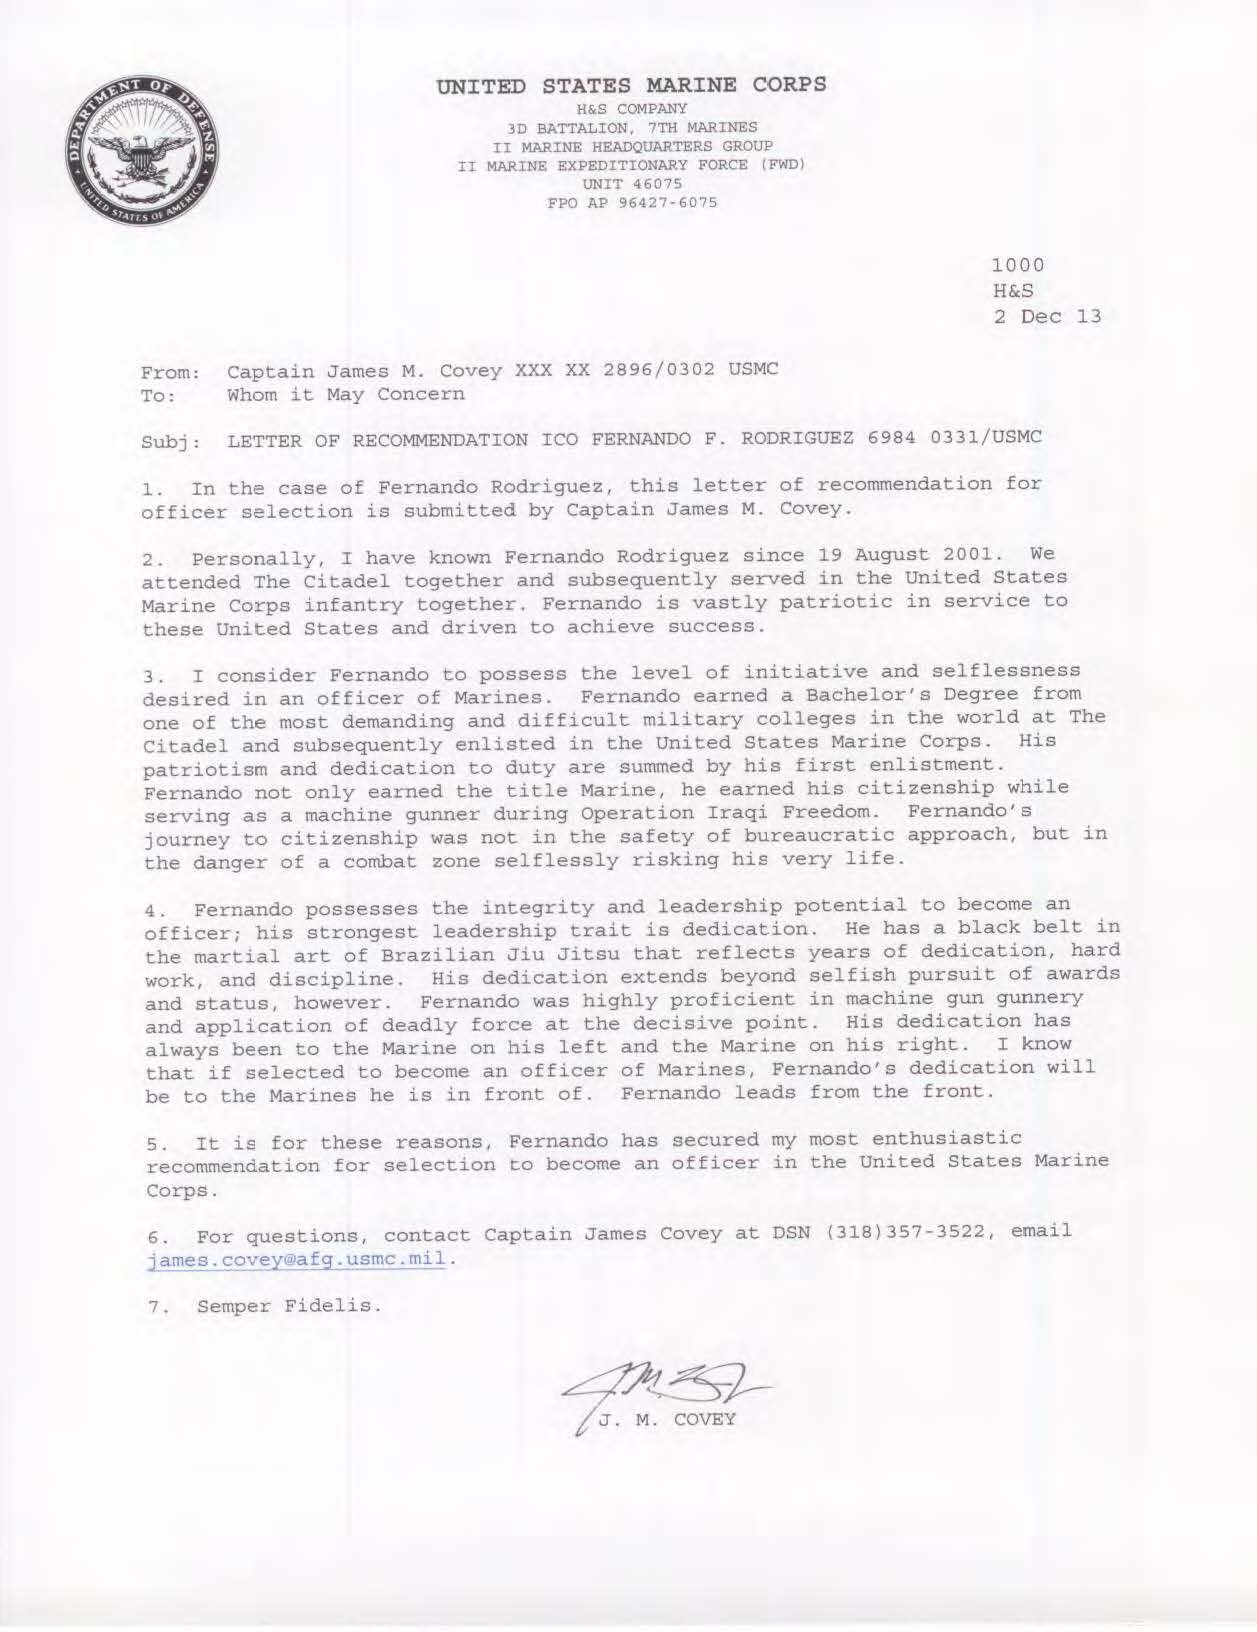 Filefernando f s rodrigues usmc officer letter of filefernando f s rodrigues usmc officer letter of recommendation 4g spiritdancerdesigns